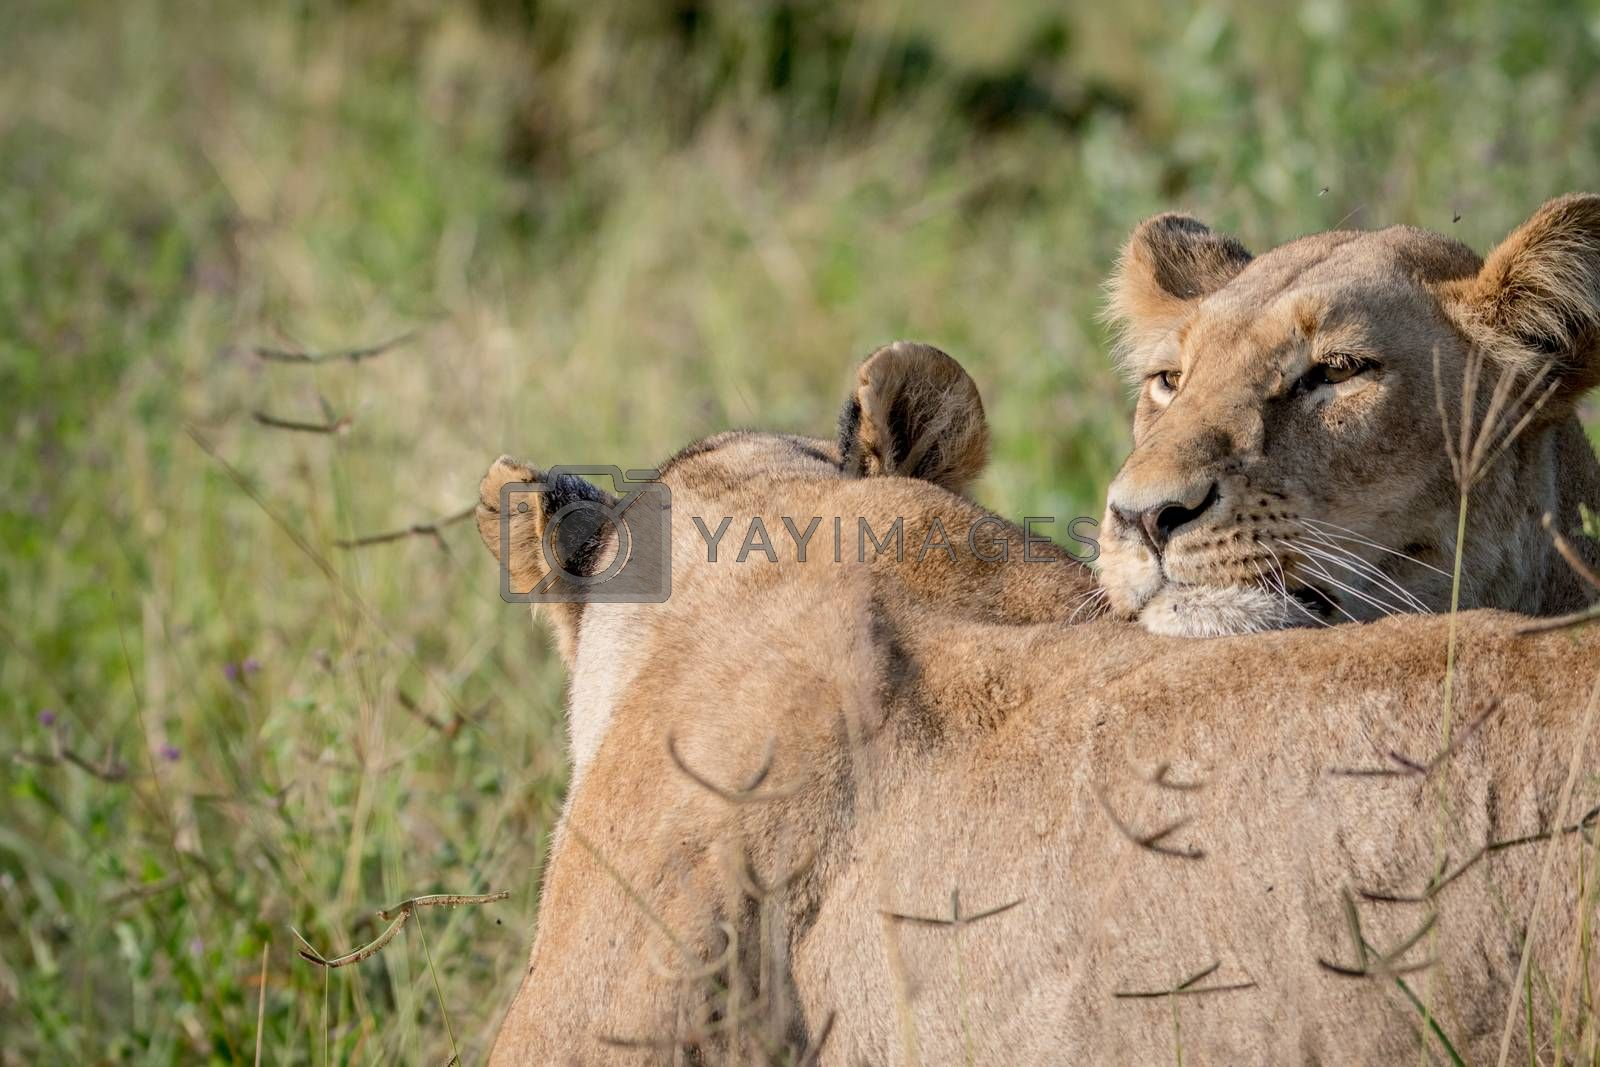 Two Lions bonding in the grass in the Chobe National Park, Botswana.